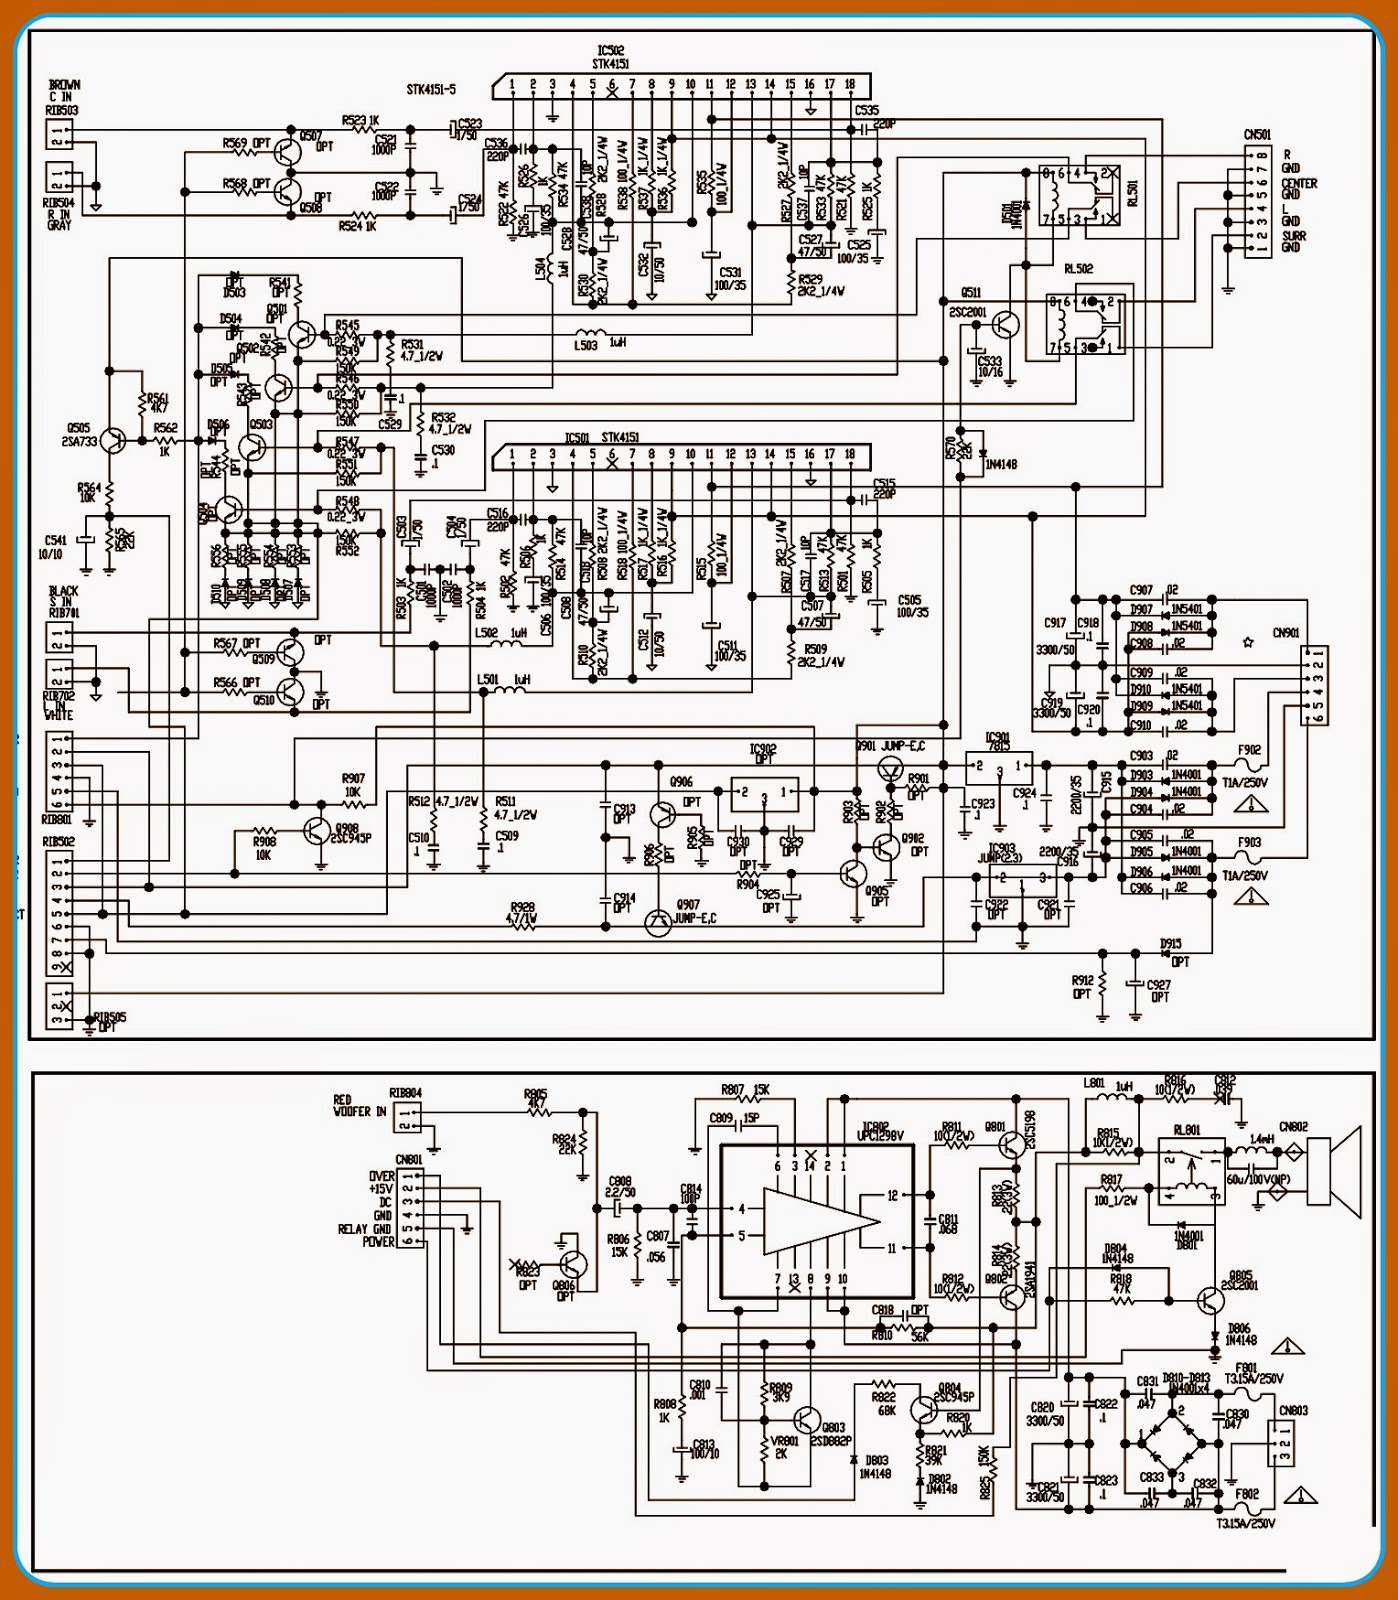 klipsch promedia 2 1 wiring diagram car audio crossover plate subwoofer schematic get free image